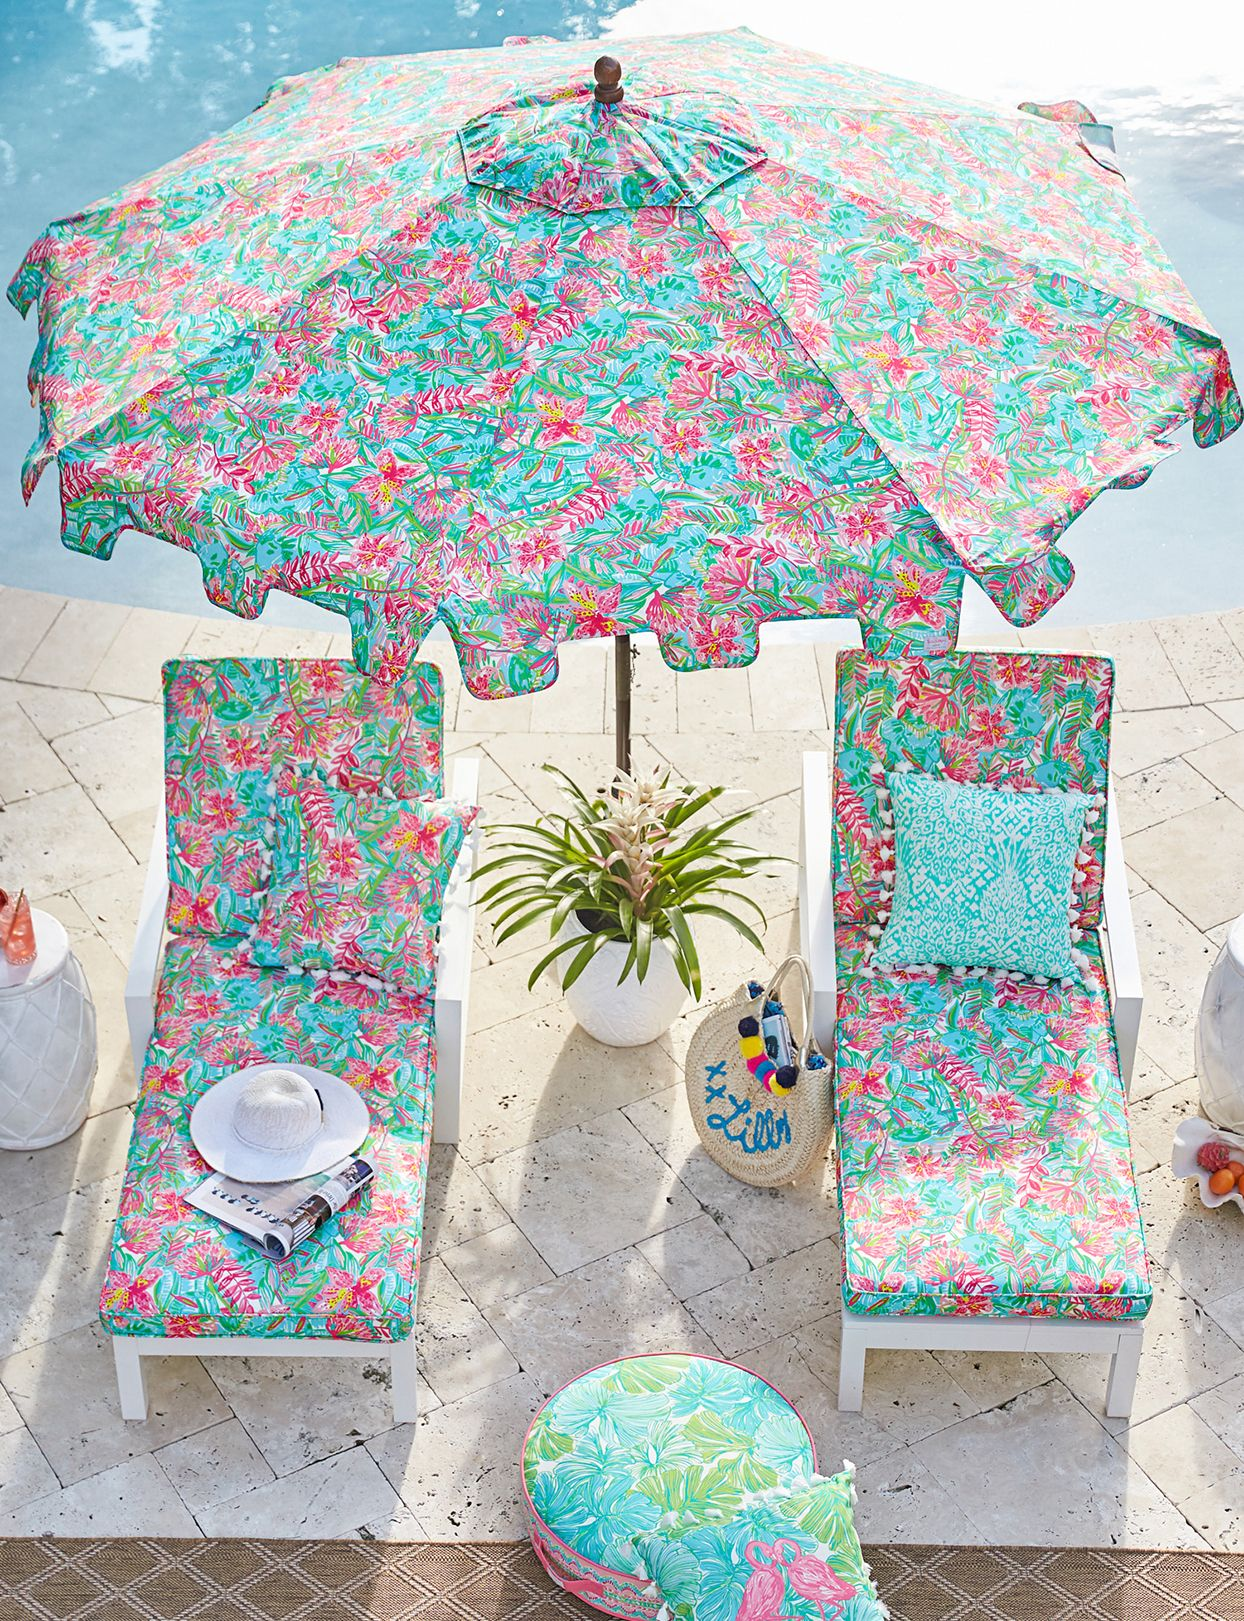 5 Adorable Products Under 30 We Love From Lilly Pulitzer